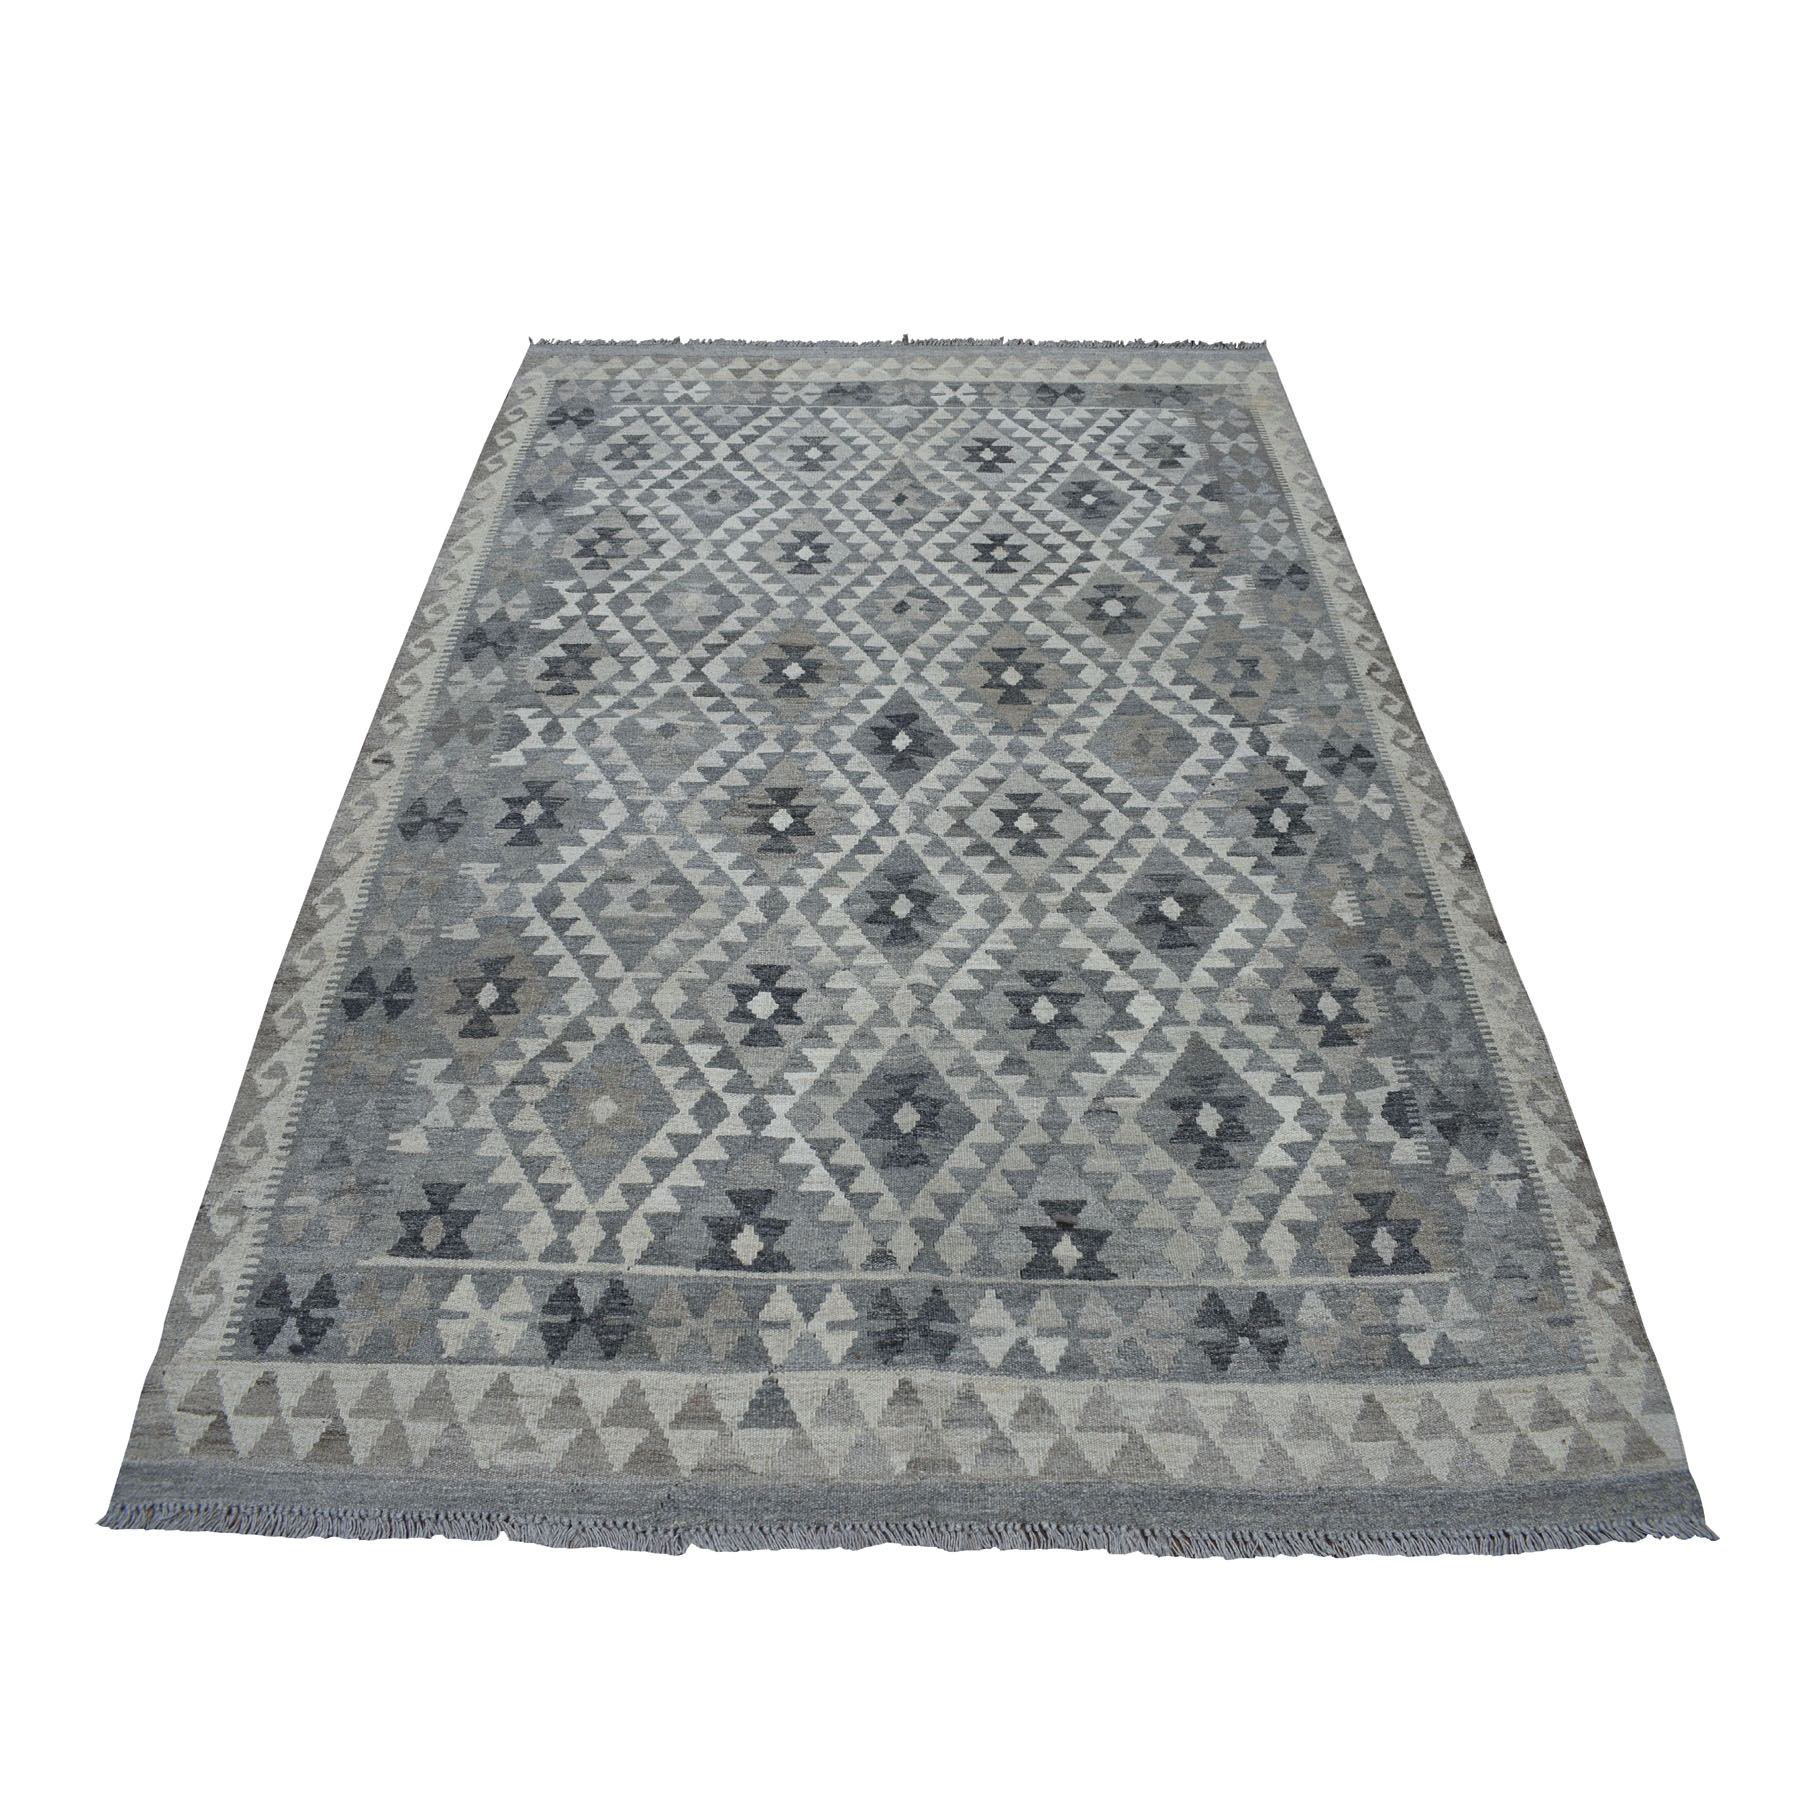 """5'10""""X8' Undyed Natural Wool Afghan Kilim Reversible Hand Woven Oriental Rug moaecde9"""